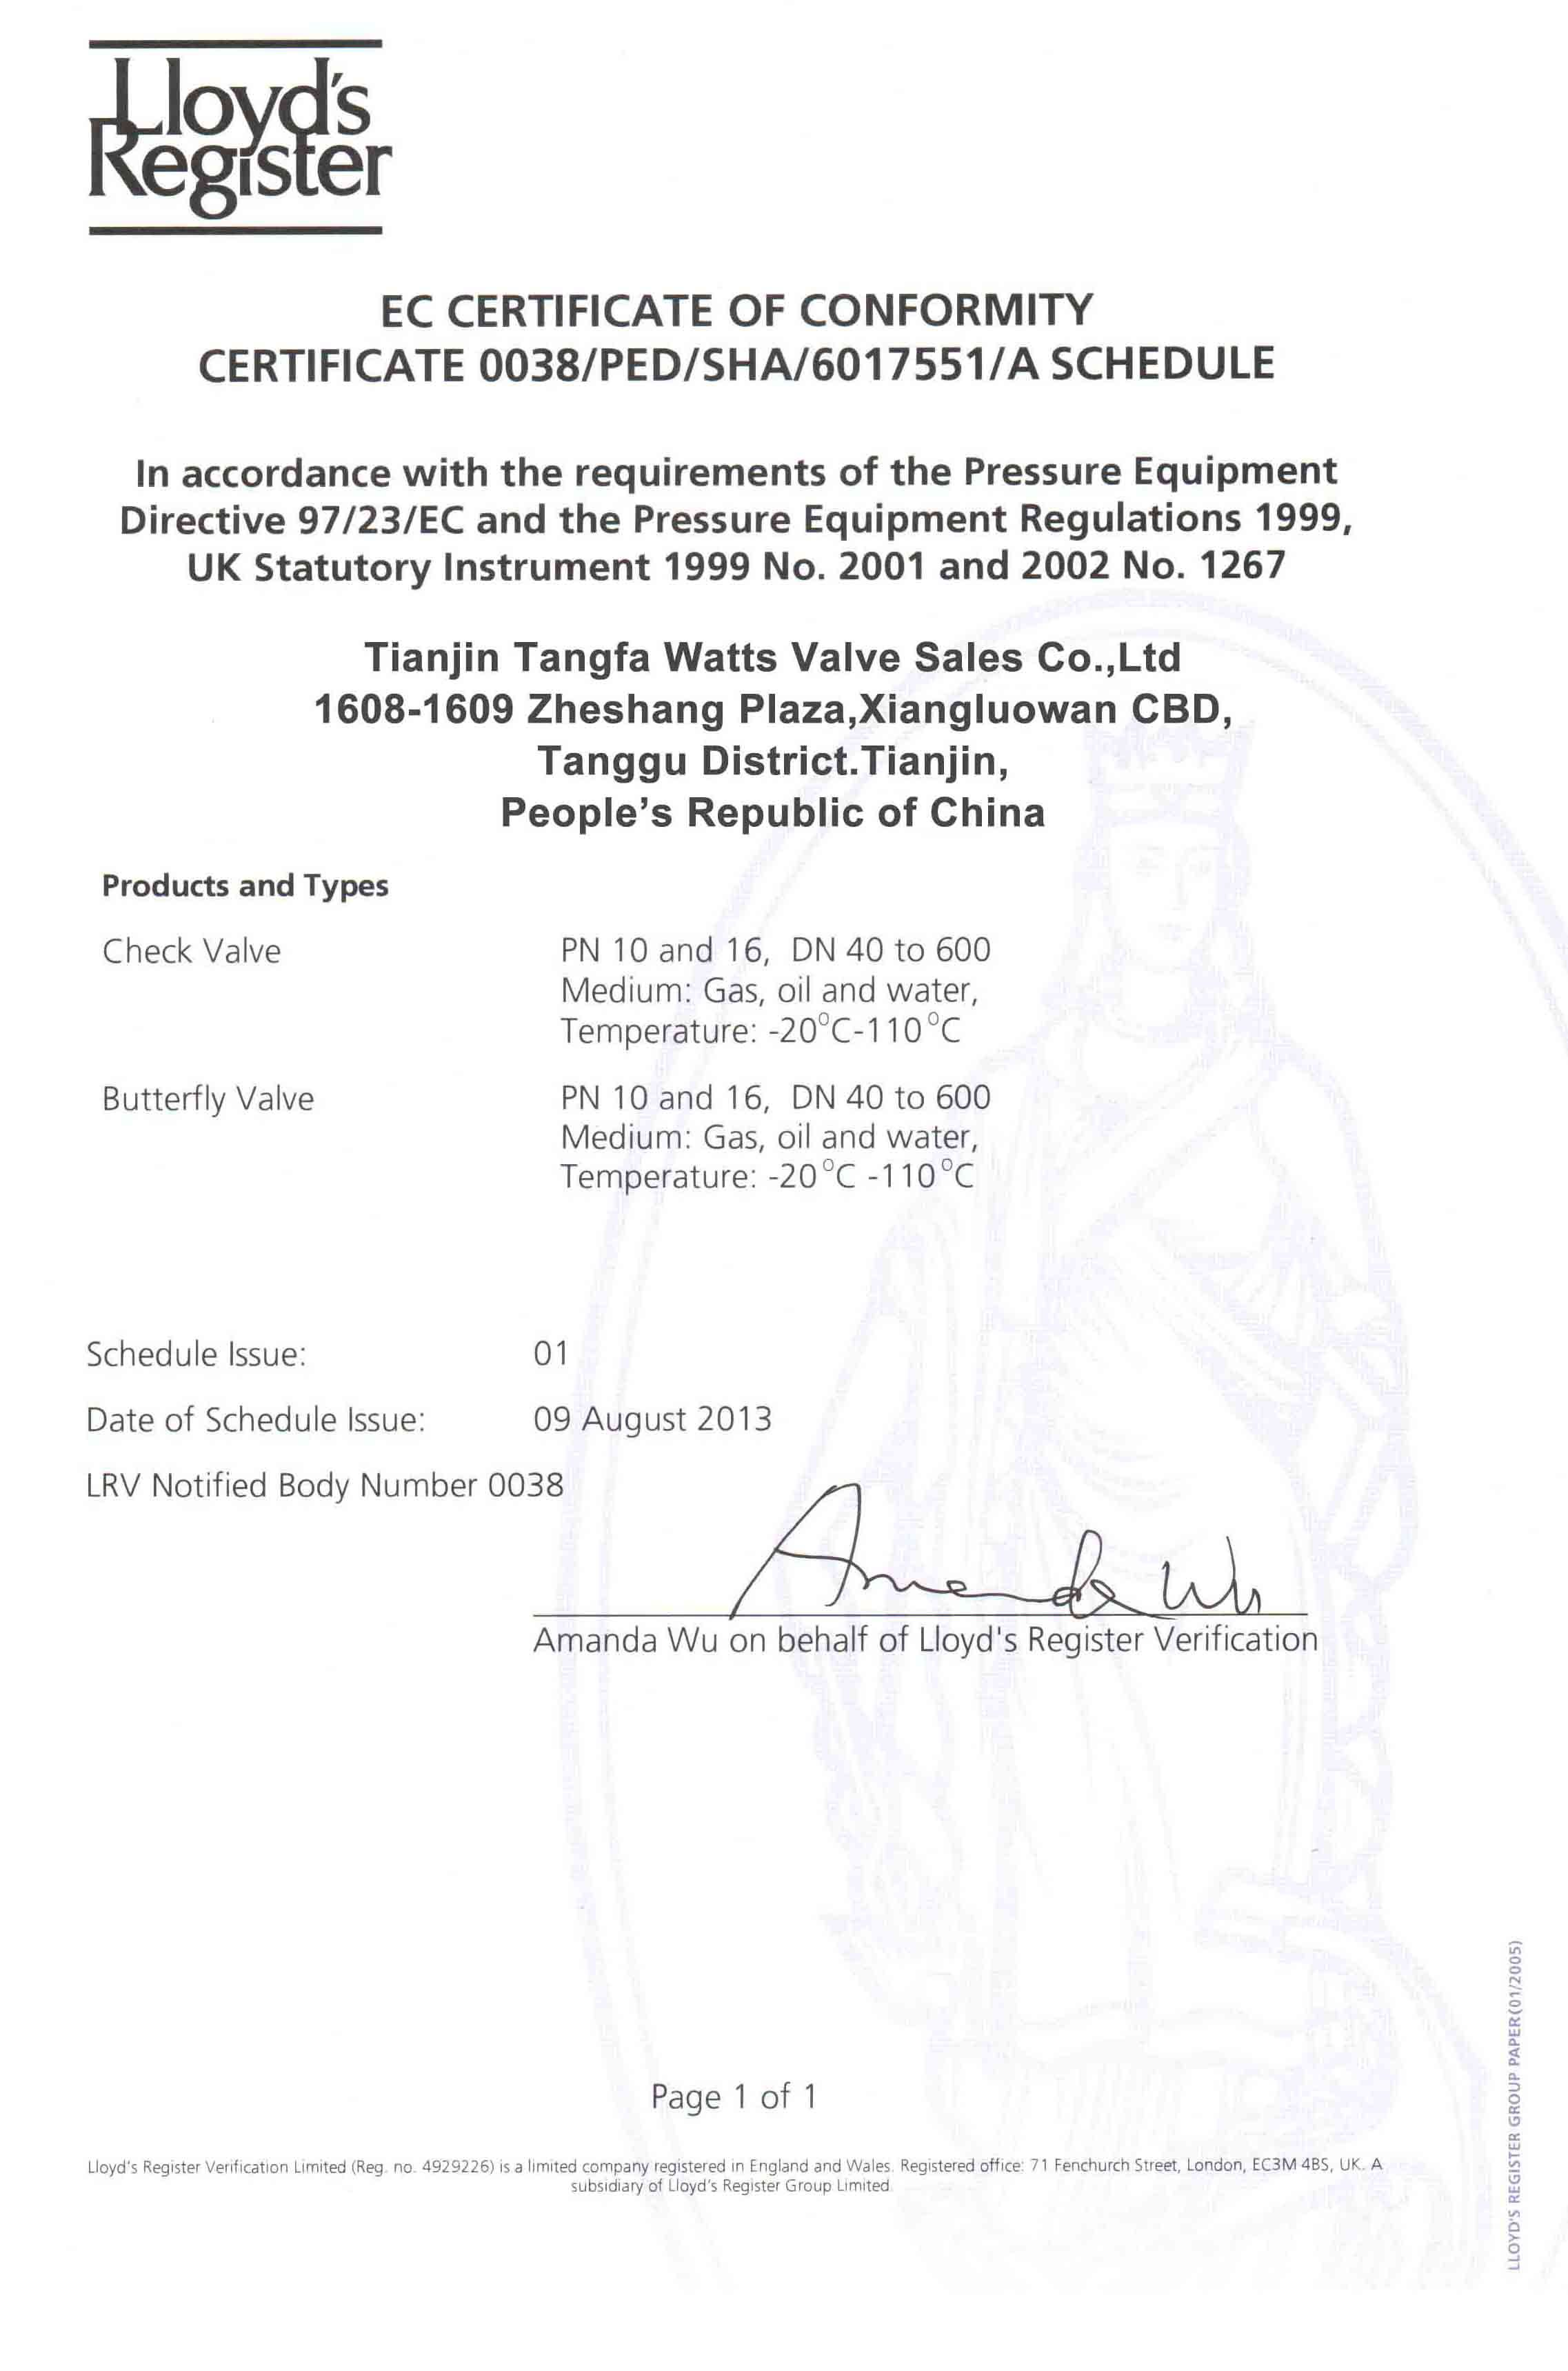 CE Certificate for Butterfly valves and Check valves